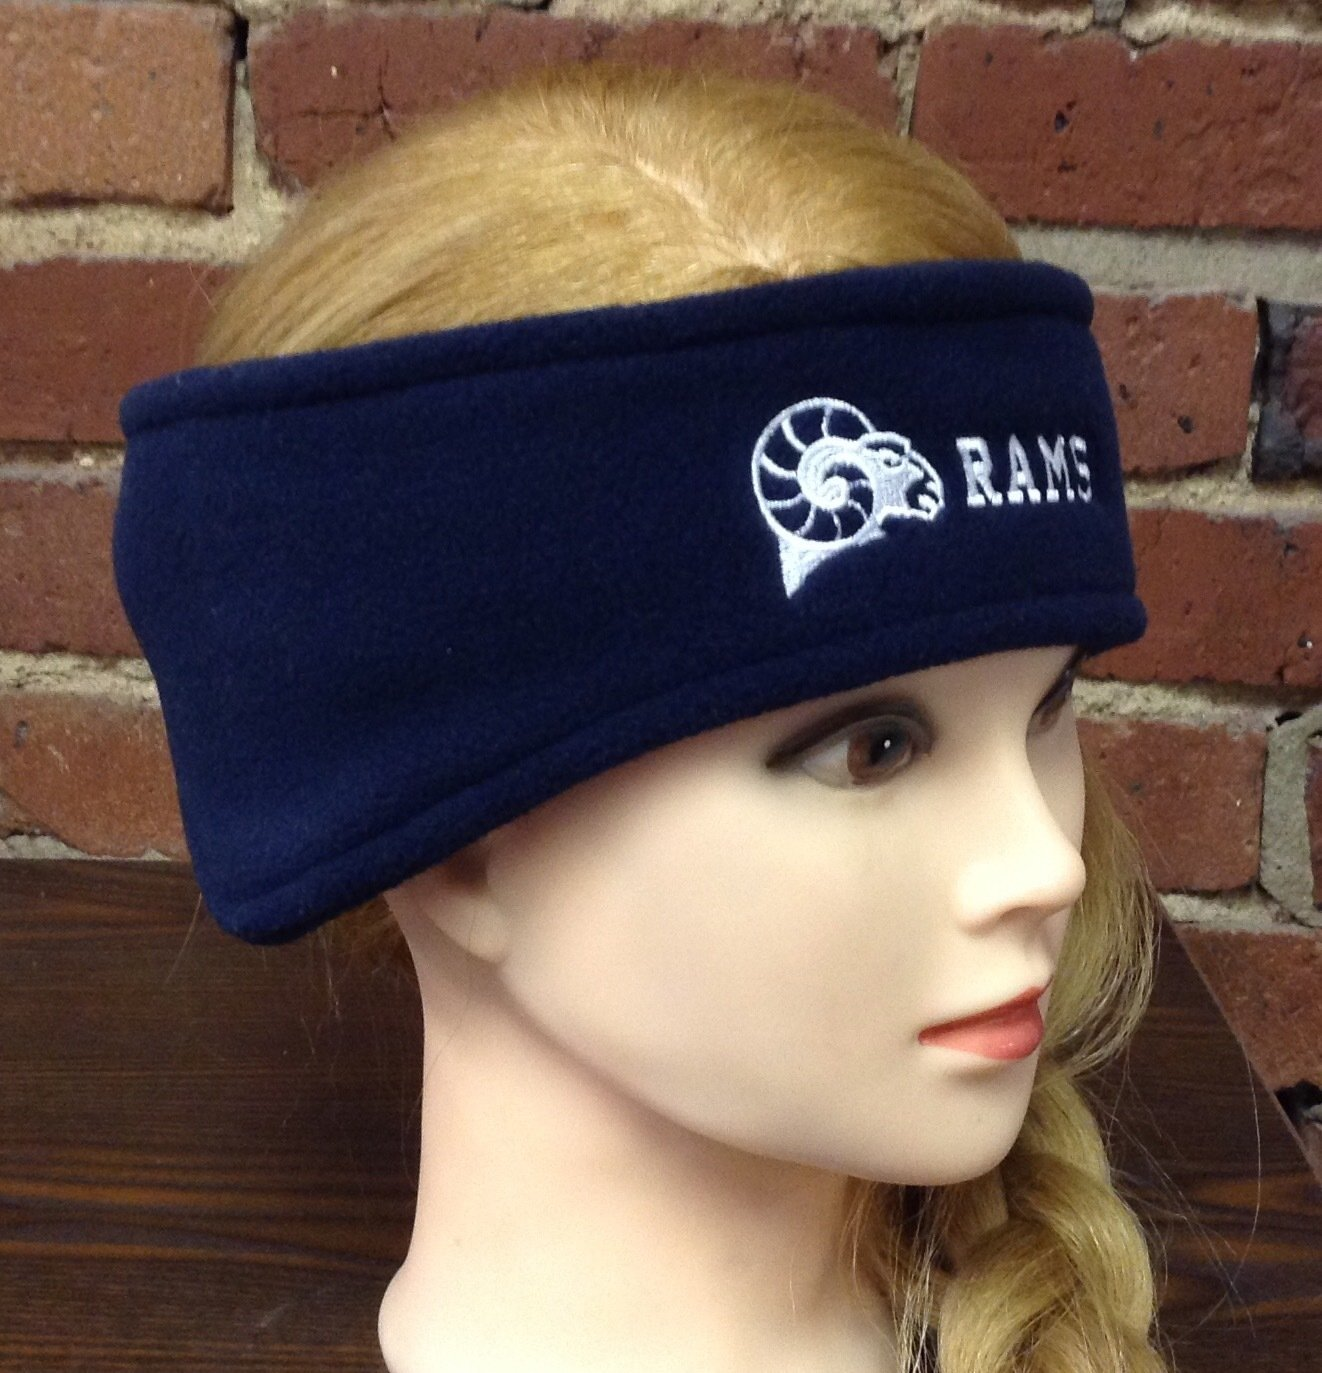 Headband with ear warmers, navy blue